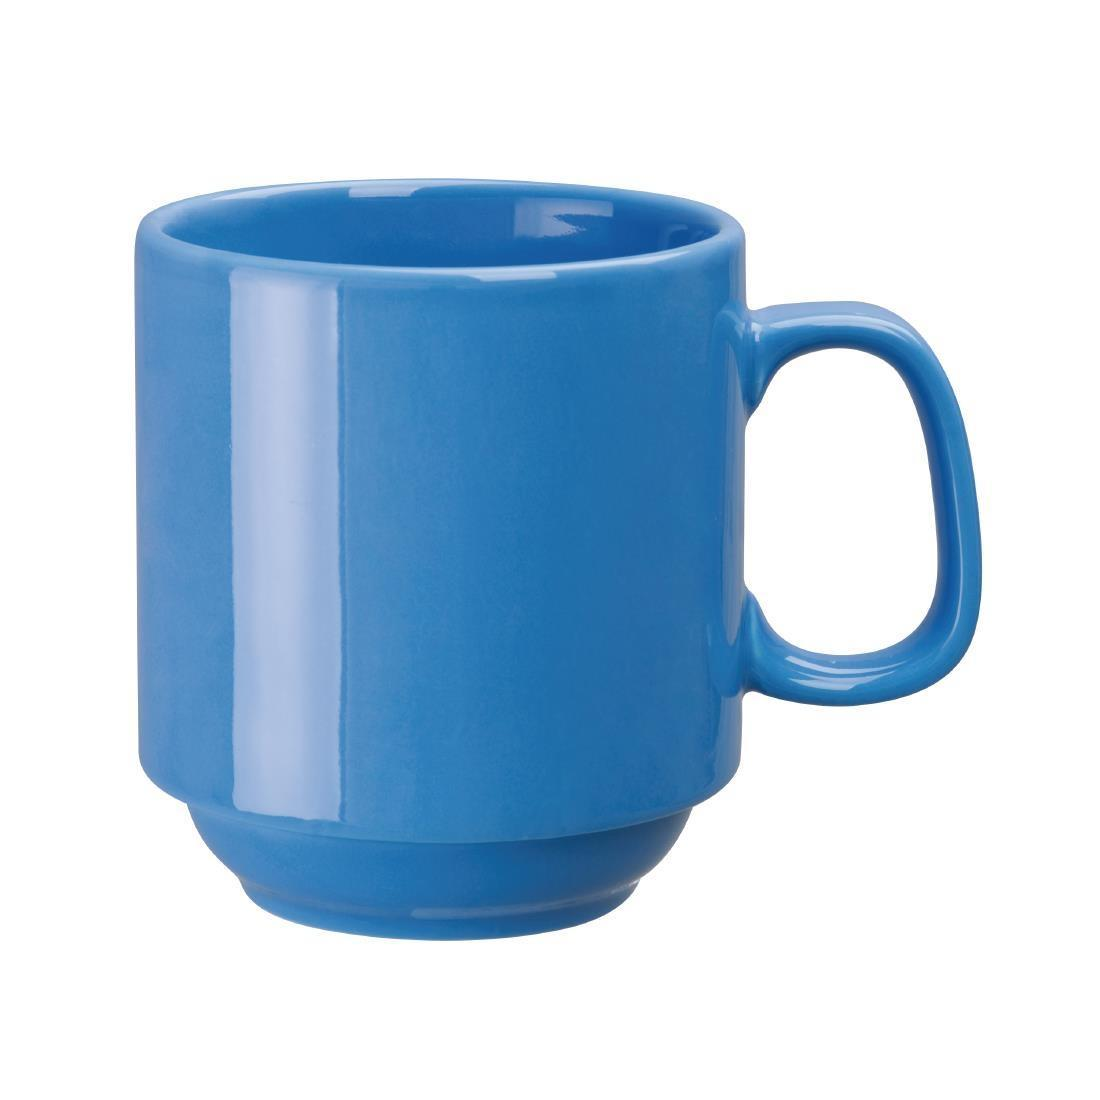 Olympia Heritage Stacking Mug Blue 300ml